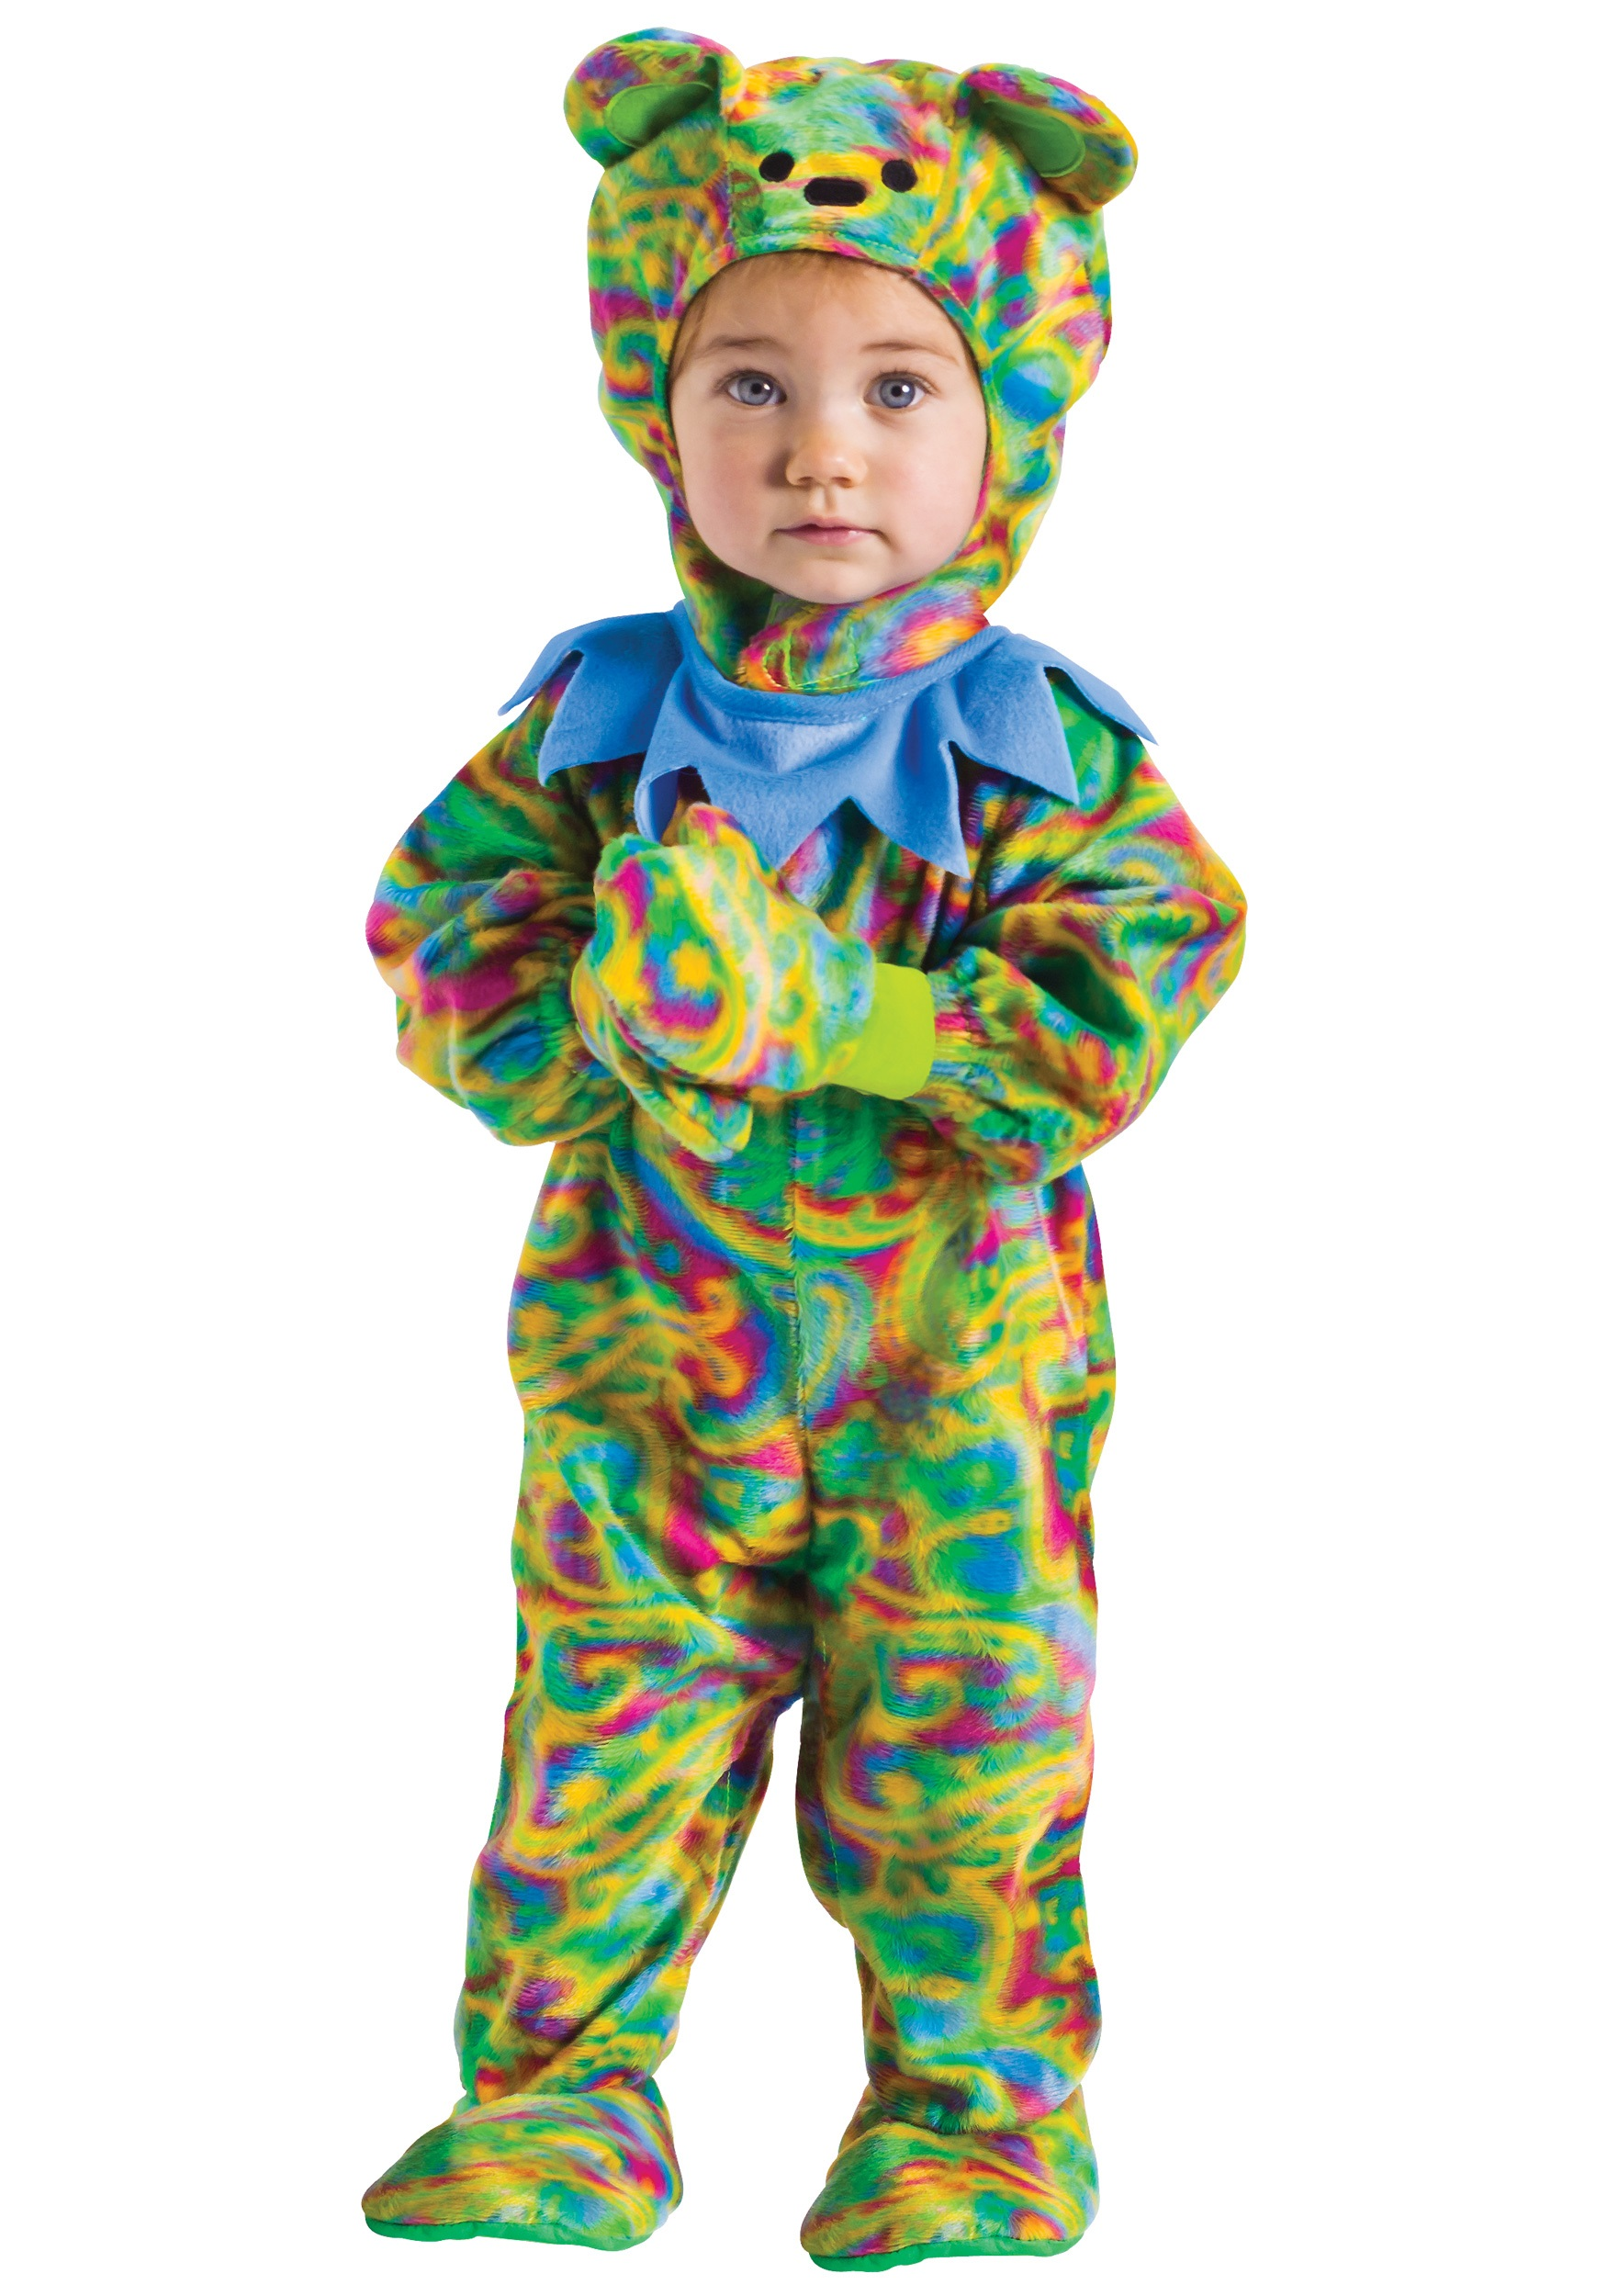 Tie Dye Halloween Costume Ideas Baby Tie Dye Bear Costume